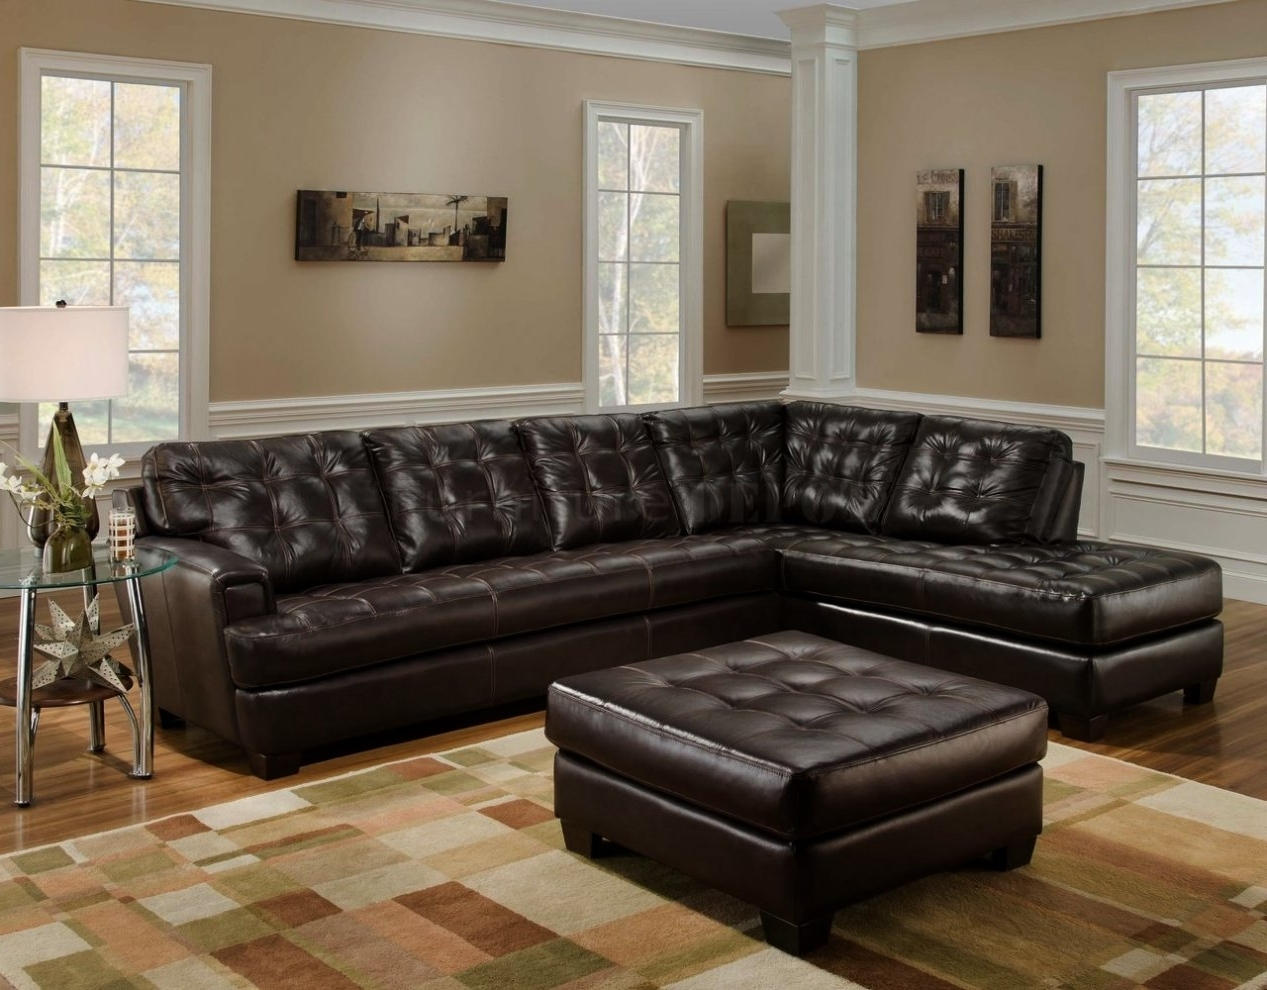 Current Dark Brown Leather Tufted Sectional Chaise Lounge Sofa With Regarding Leather Sectionals With Chaise (View 14 of 15)